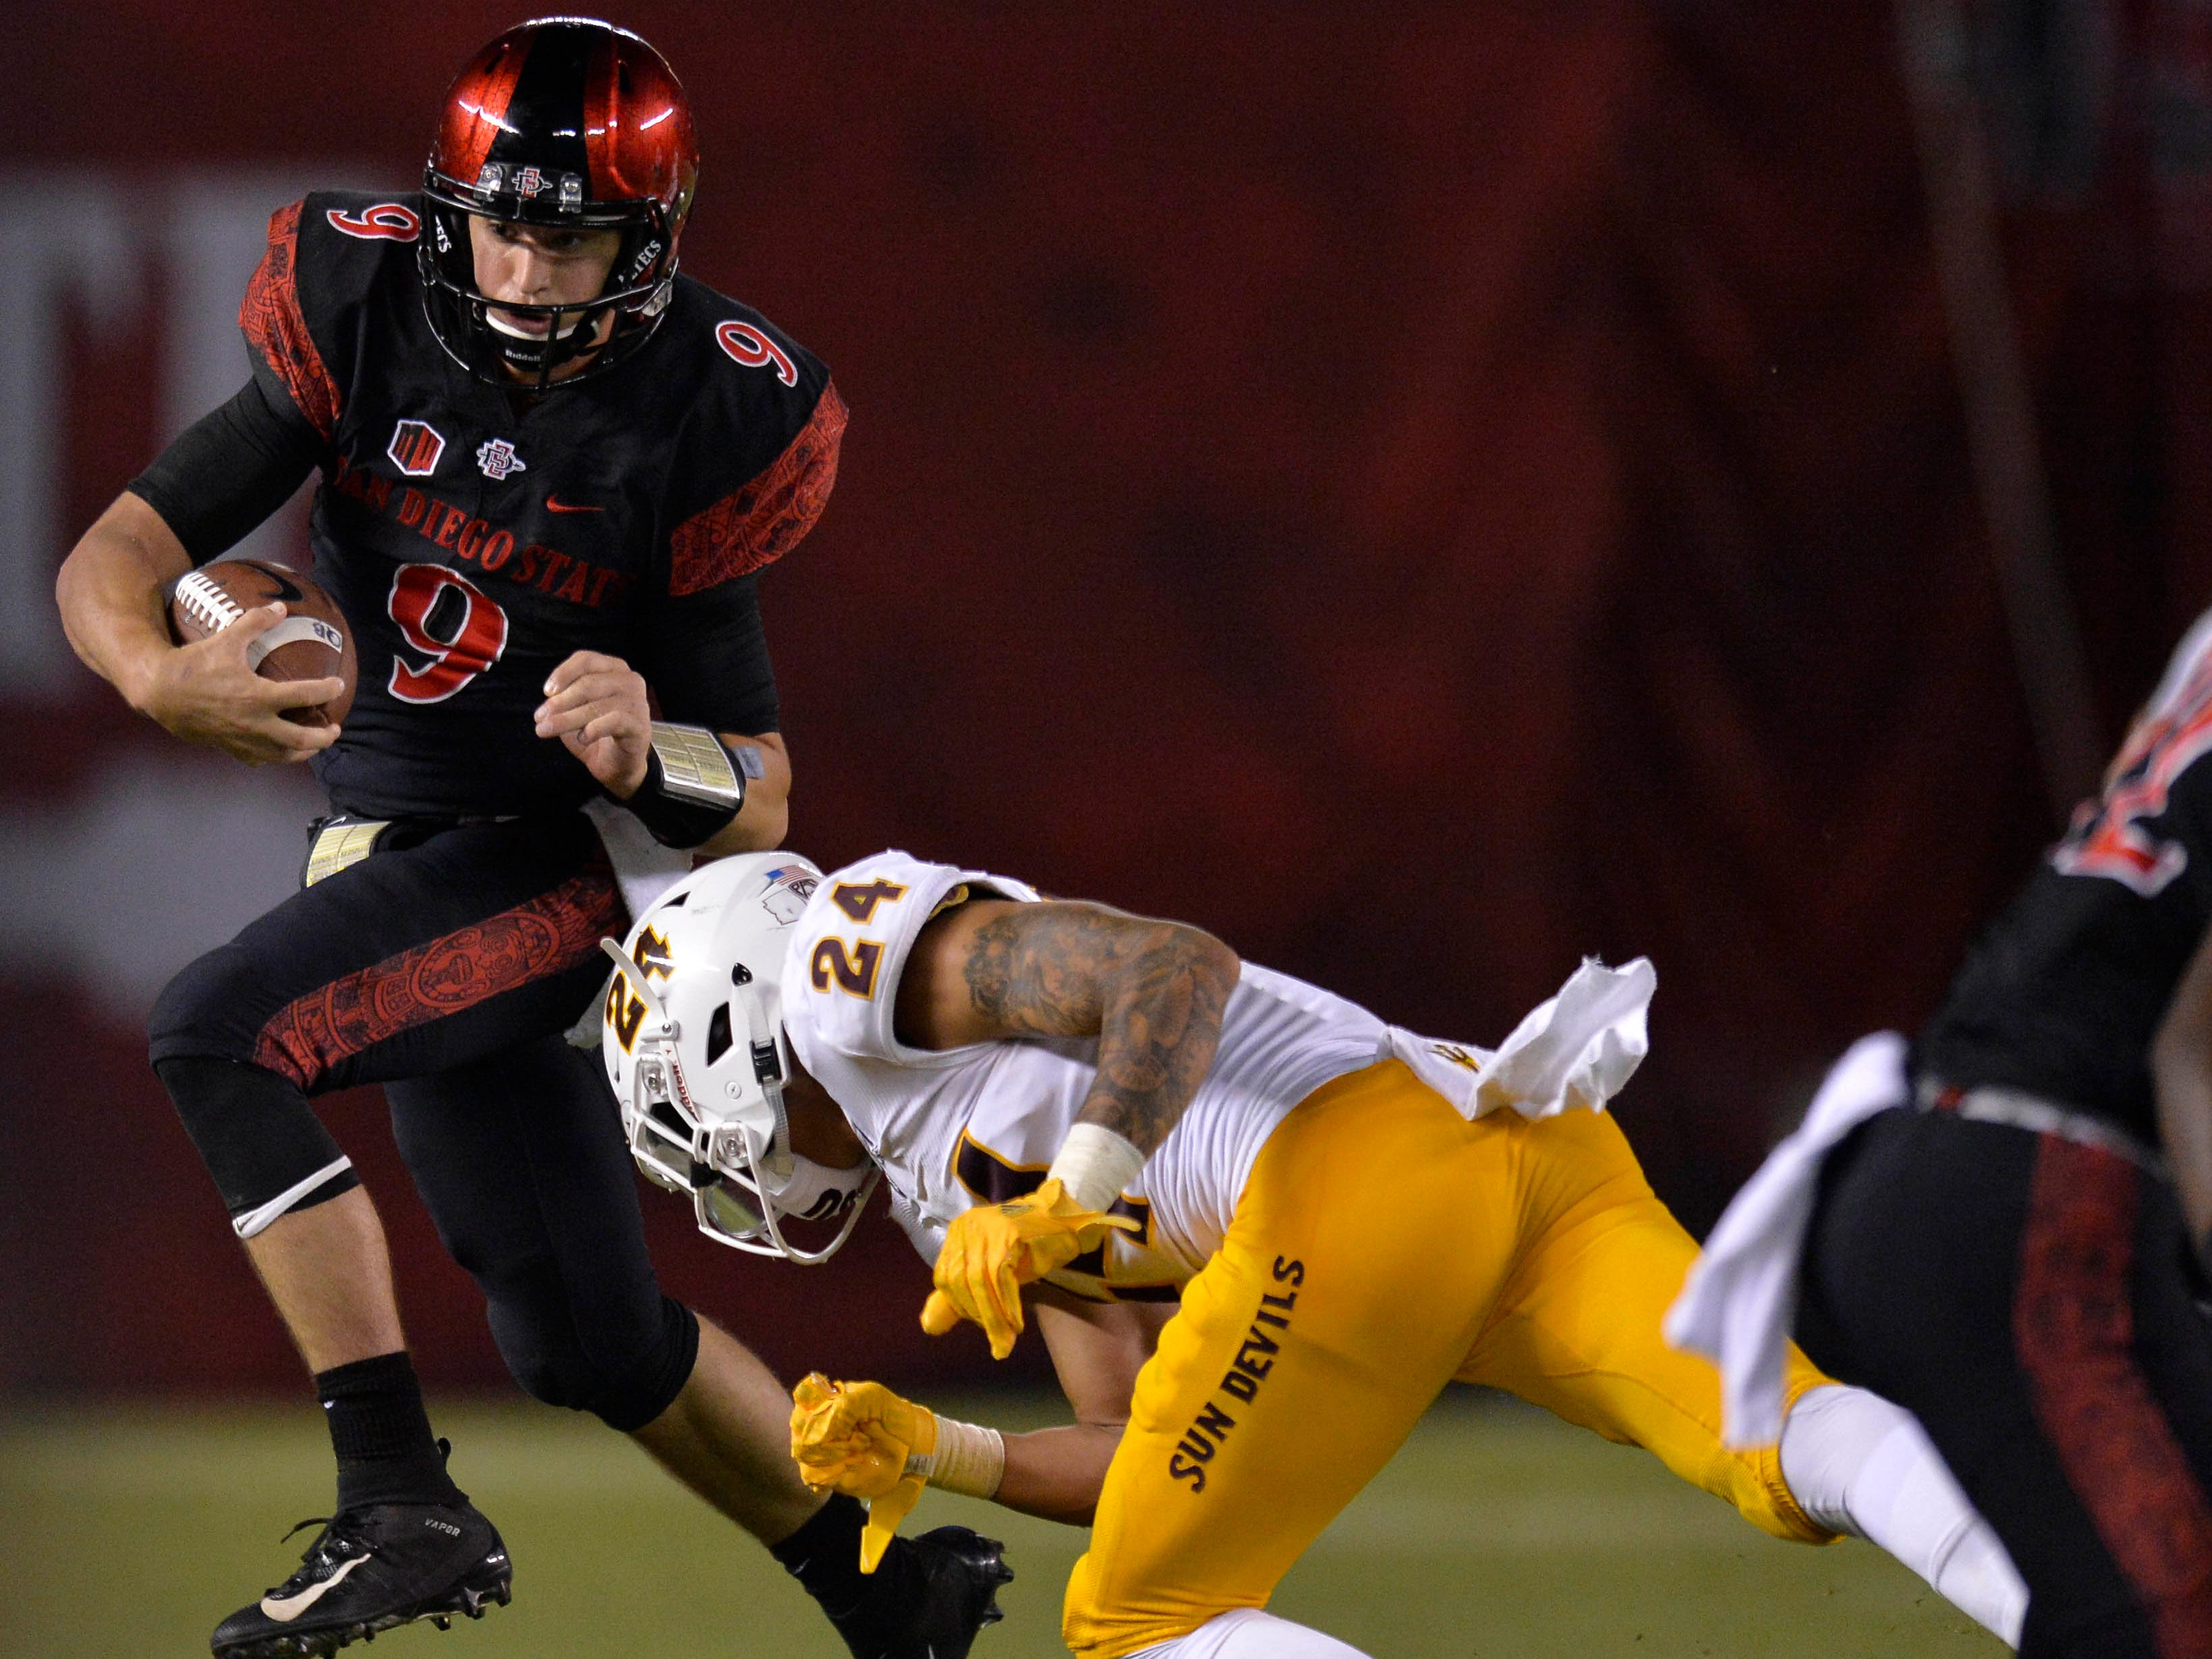 Sep 15, 2018; San Diego, CA, USA; San Diego State Aztecs quarterback Ryan Agnew (9) is tackled by Arizona State Sun Devils defensive back Chase Lucas (24) during the third quarter at SDCCU Stadium. Mandatory Credit: Jake Roth-USA TODAY Sports